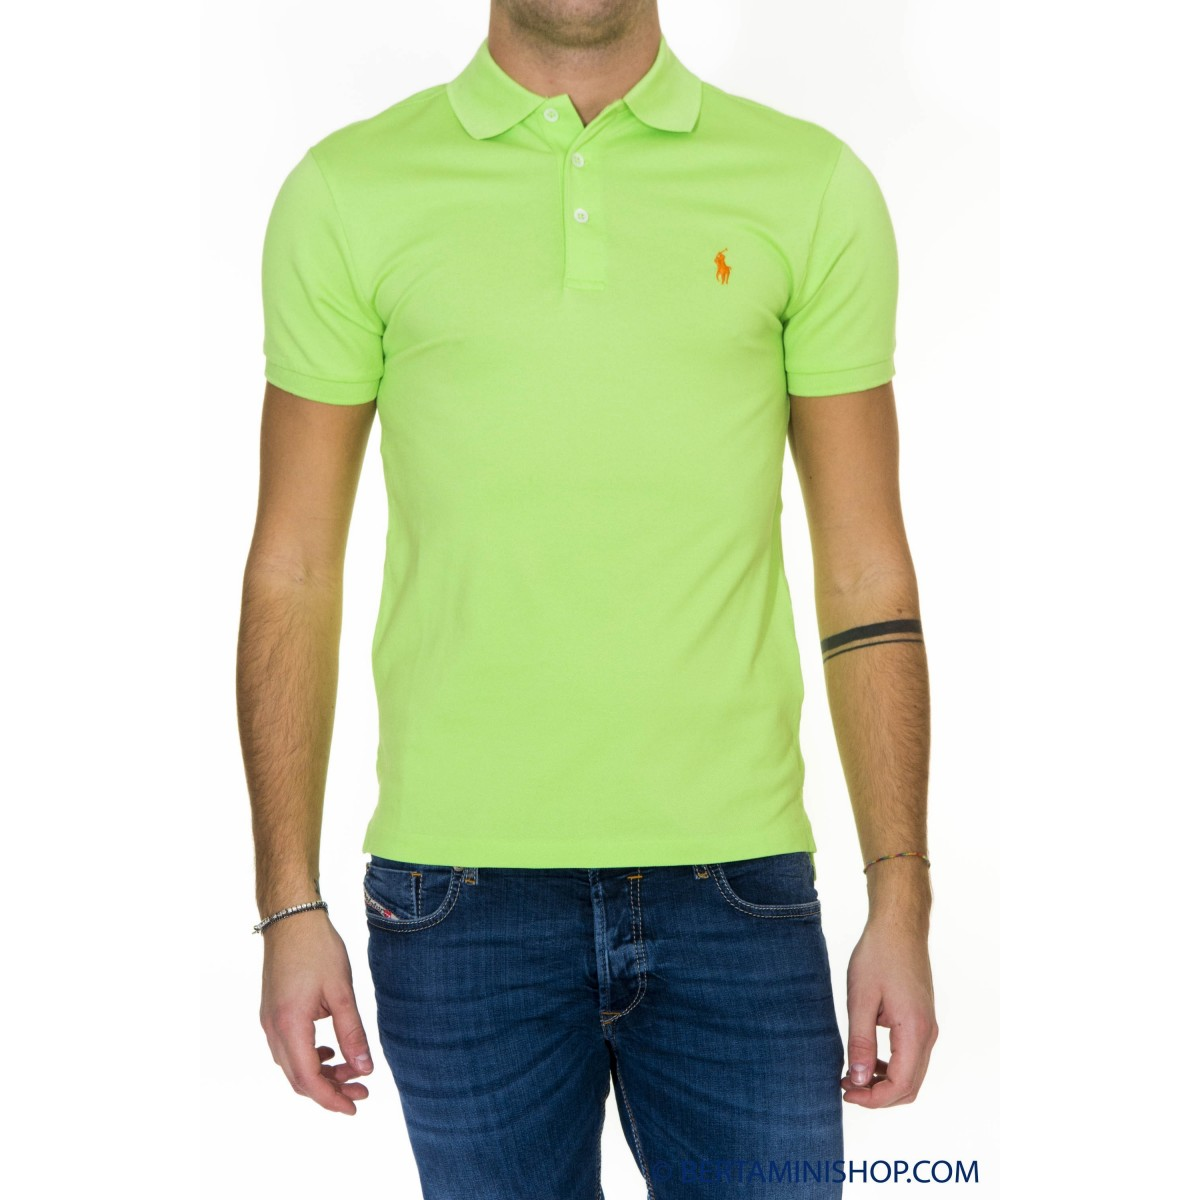 Polo Ralph Lauren Manner - A12Kjo24Btndr A3FLR - Verde acido